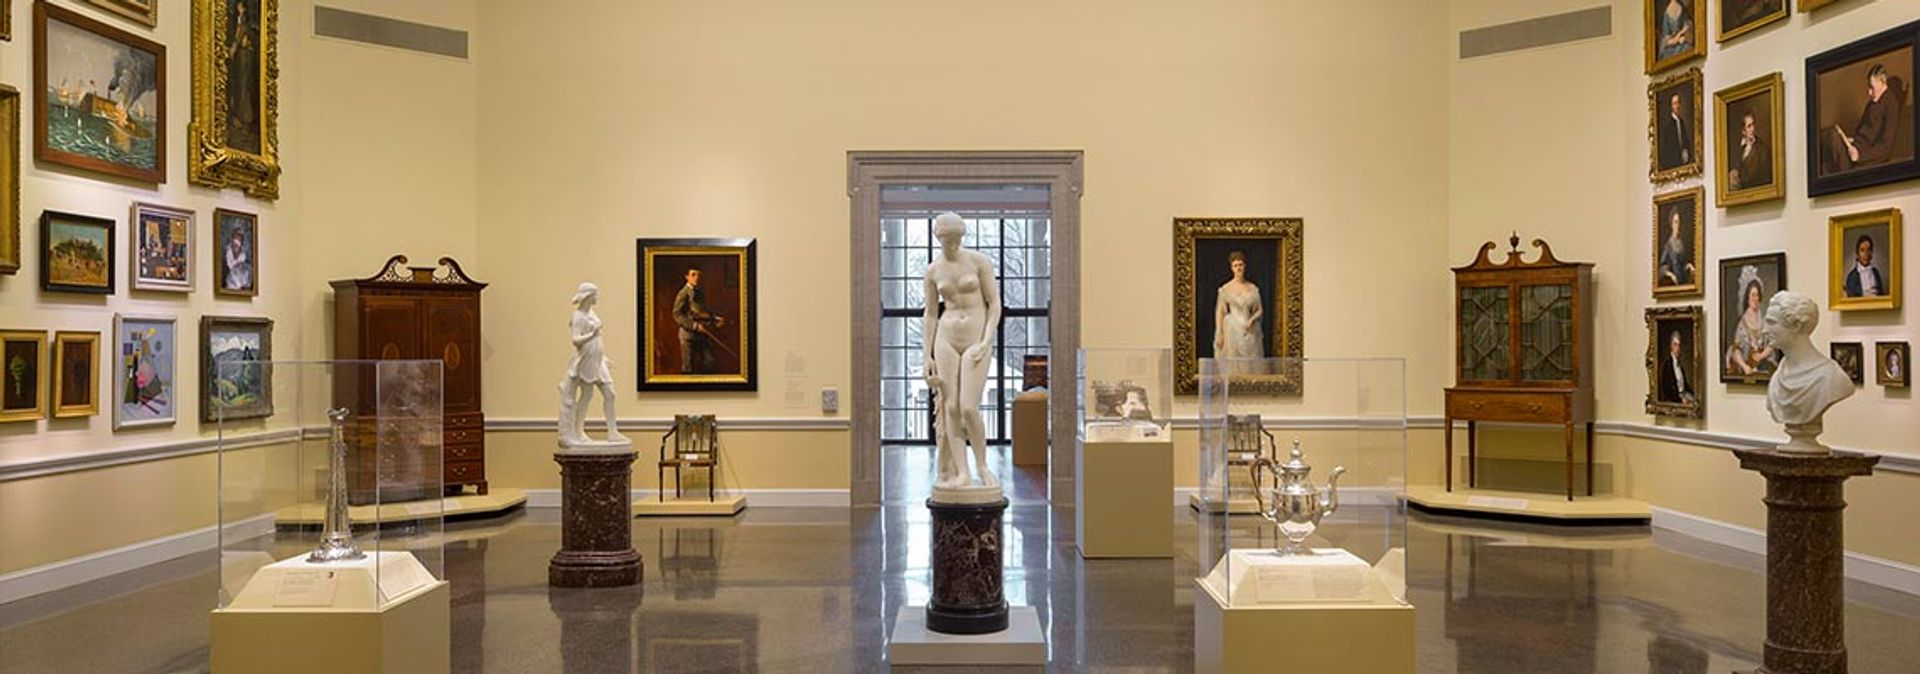 Art from Maryland on view at the Baltimore Museum of Art Baltimore Museum of Art